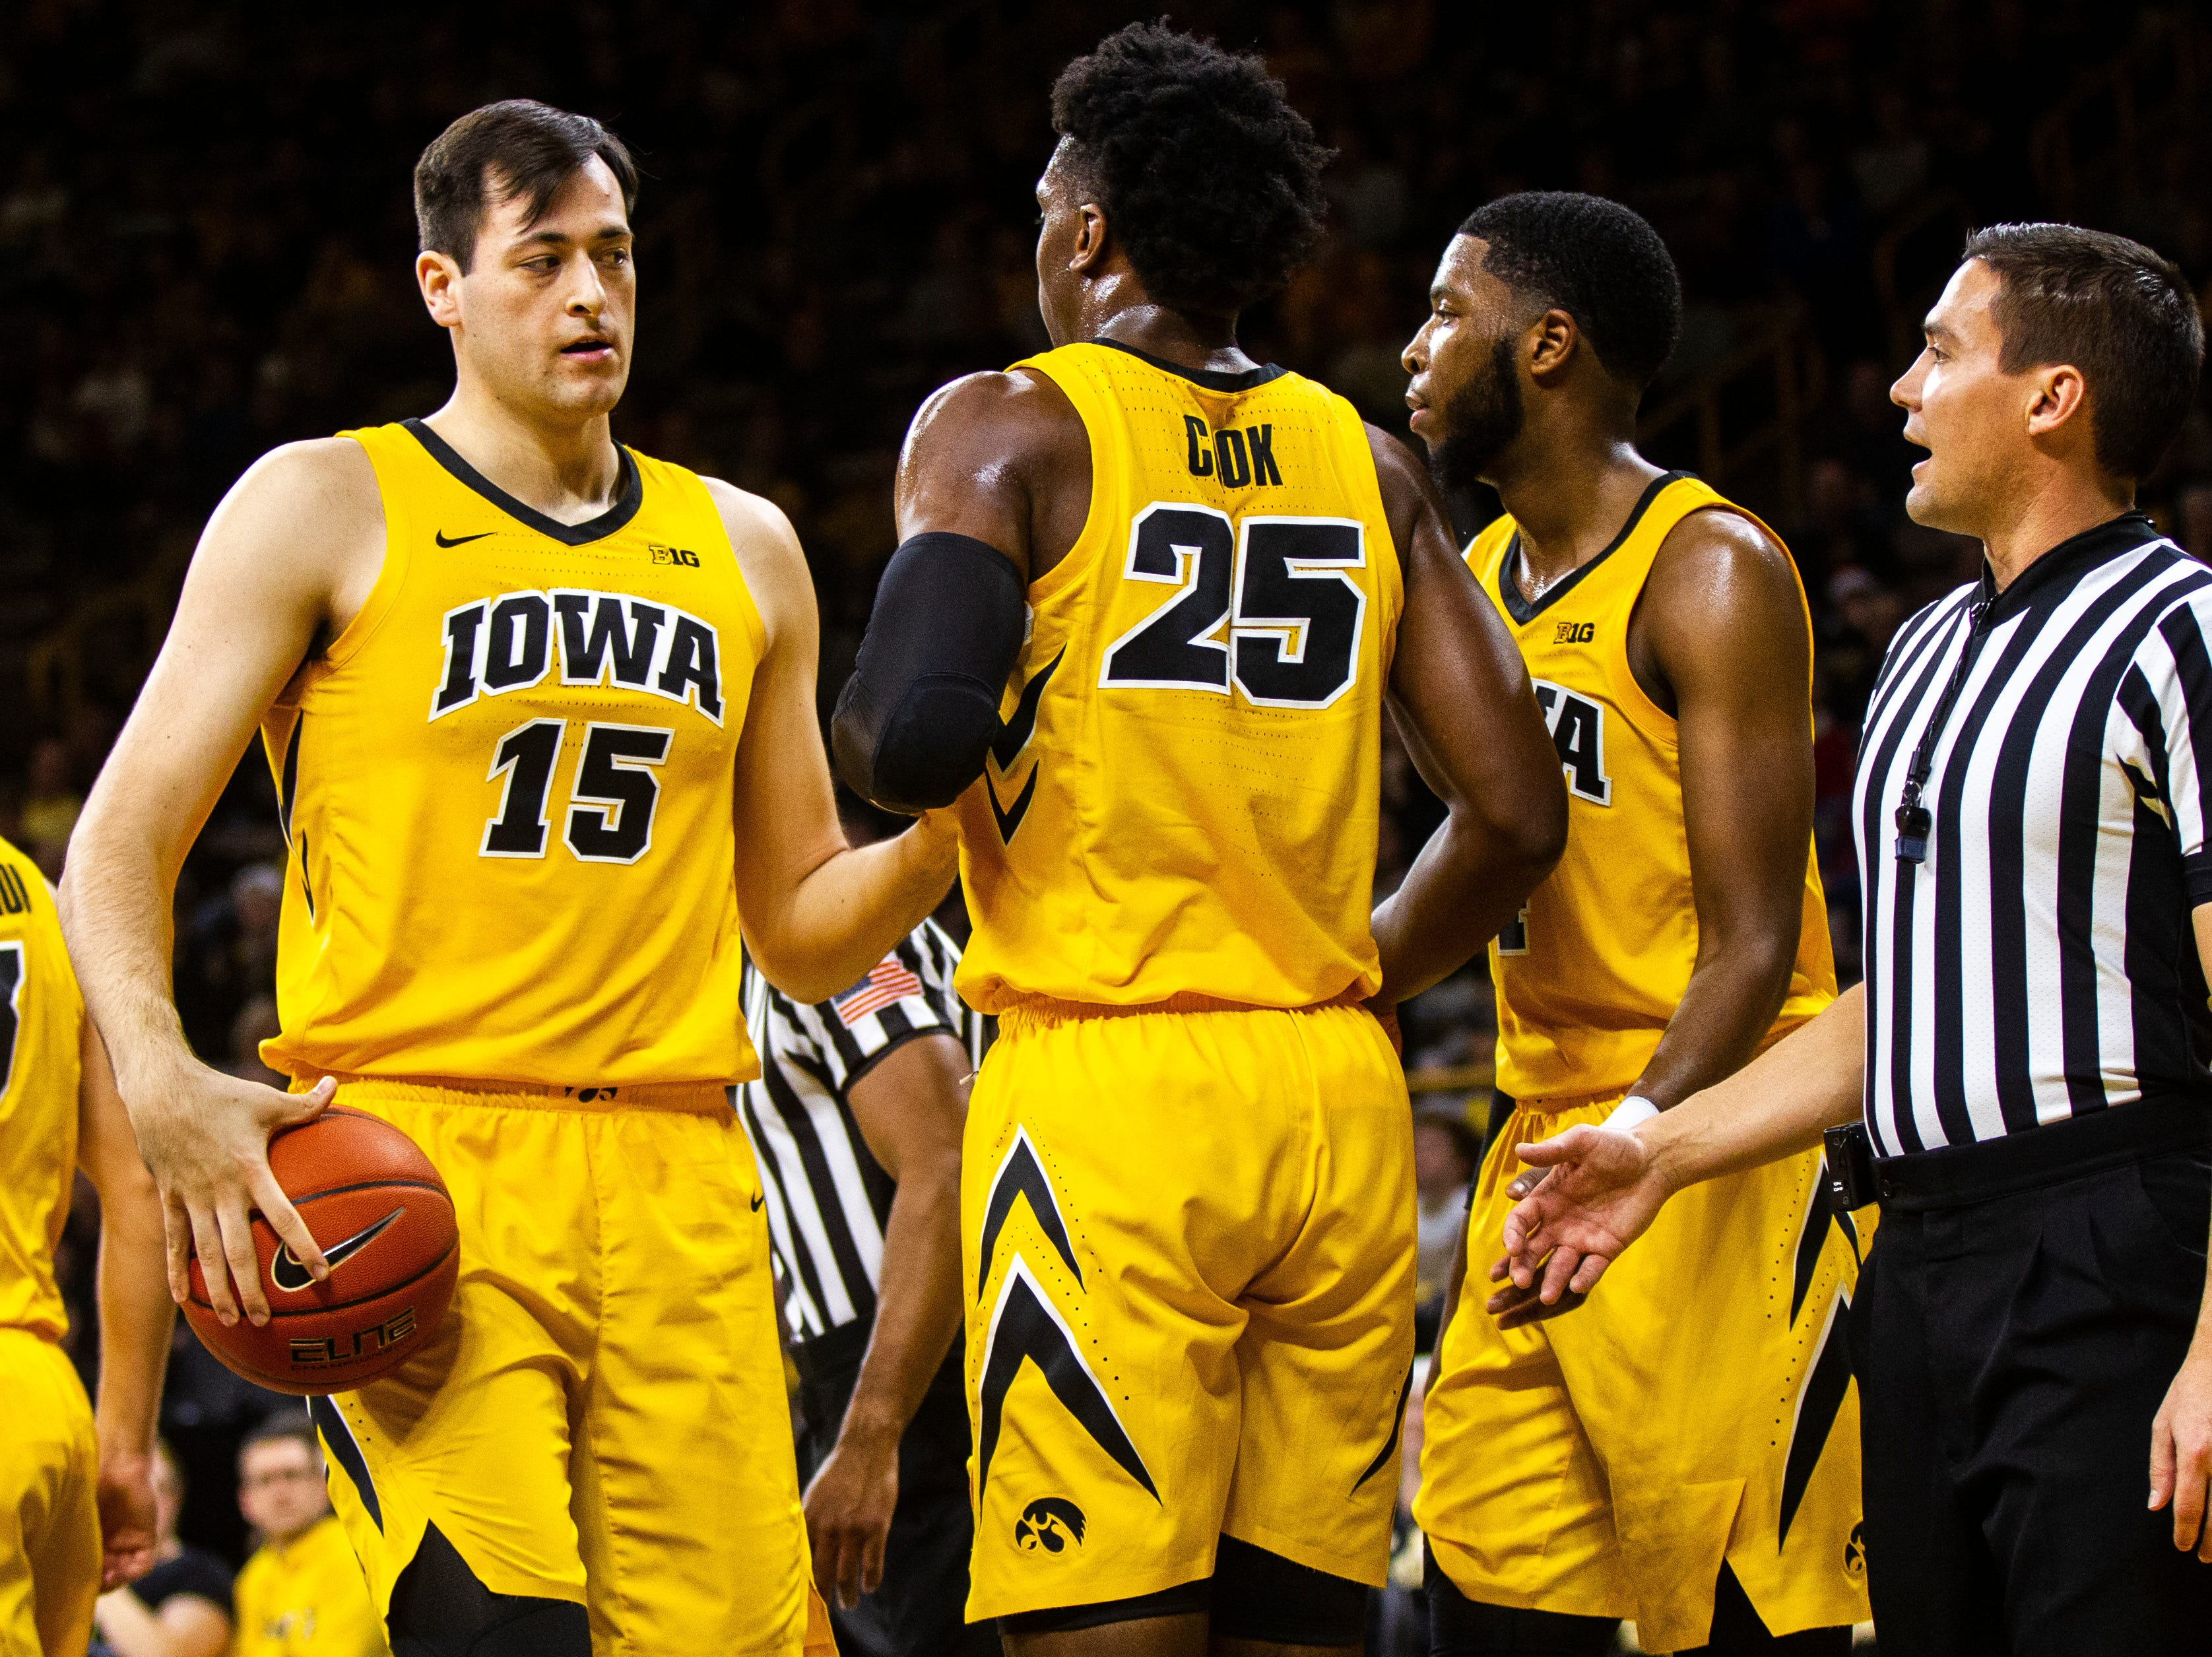 Iowa forward Tyler Cook (25) gets helped up by Iowa forward Ryan Kriener (15) after missing a dunk during a NCAA men's basketball game on Saturday, Dec. 22, 2018, at Carver-Hawkeye Arena in Iowa City.